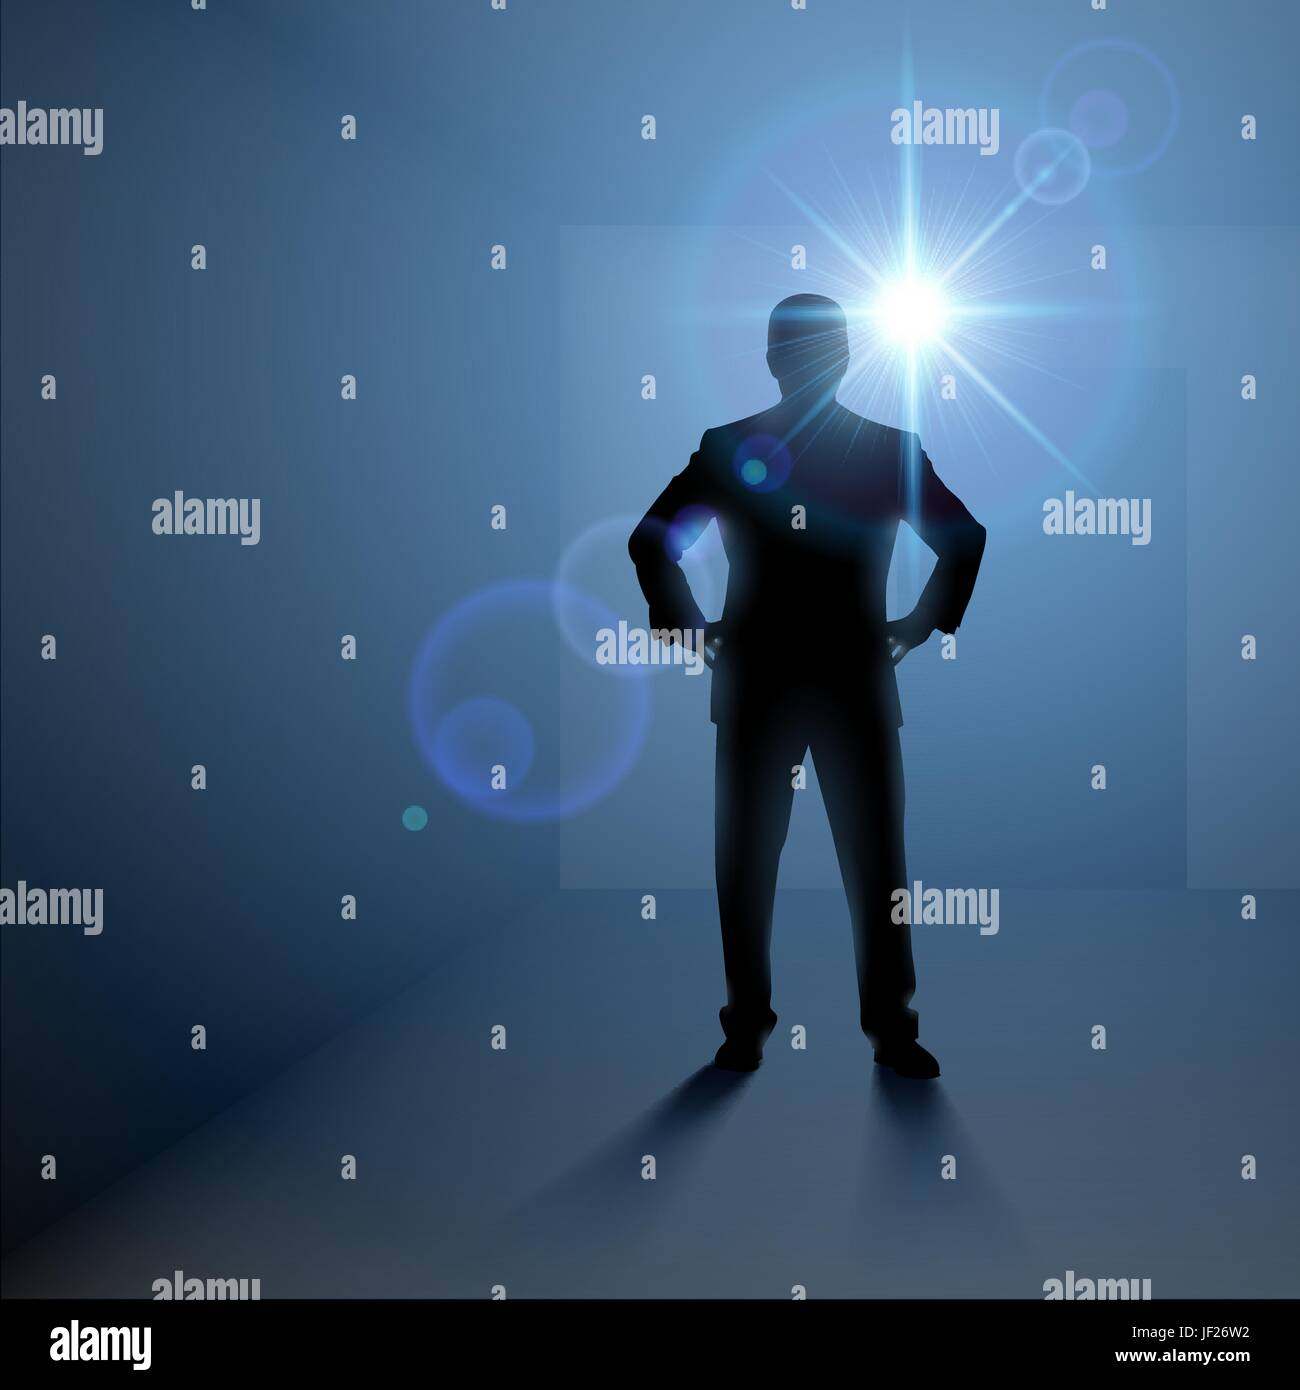 blue, humans, human beings, people, folk, persons, human, human being, life, - Stock Image